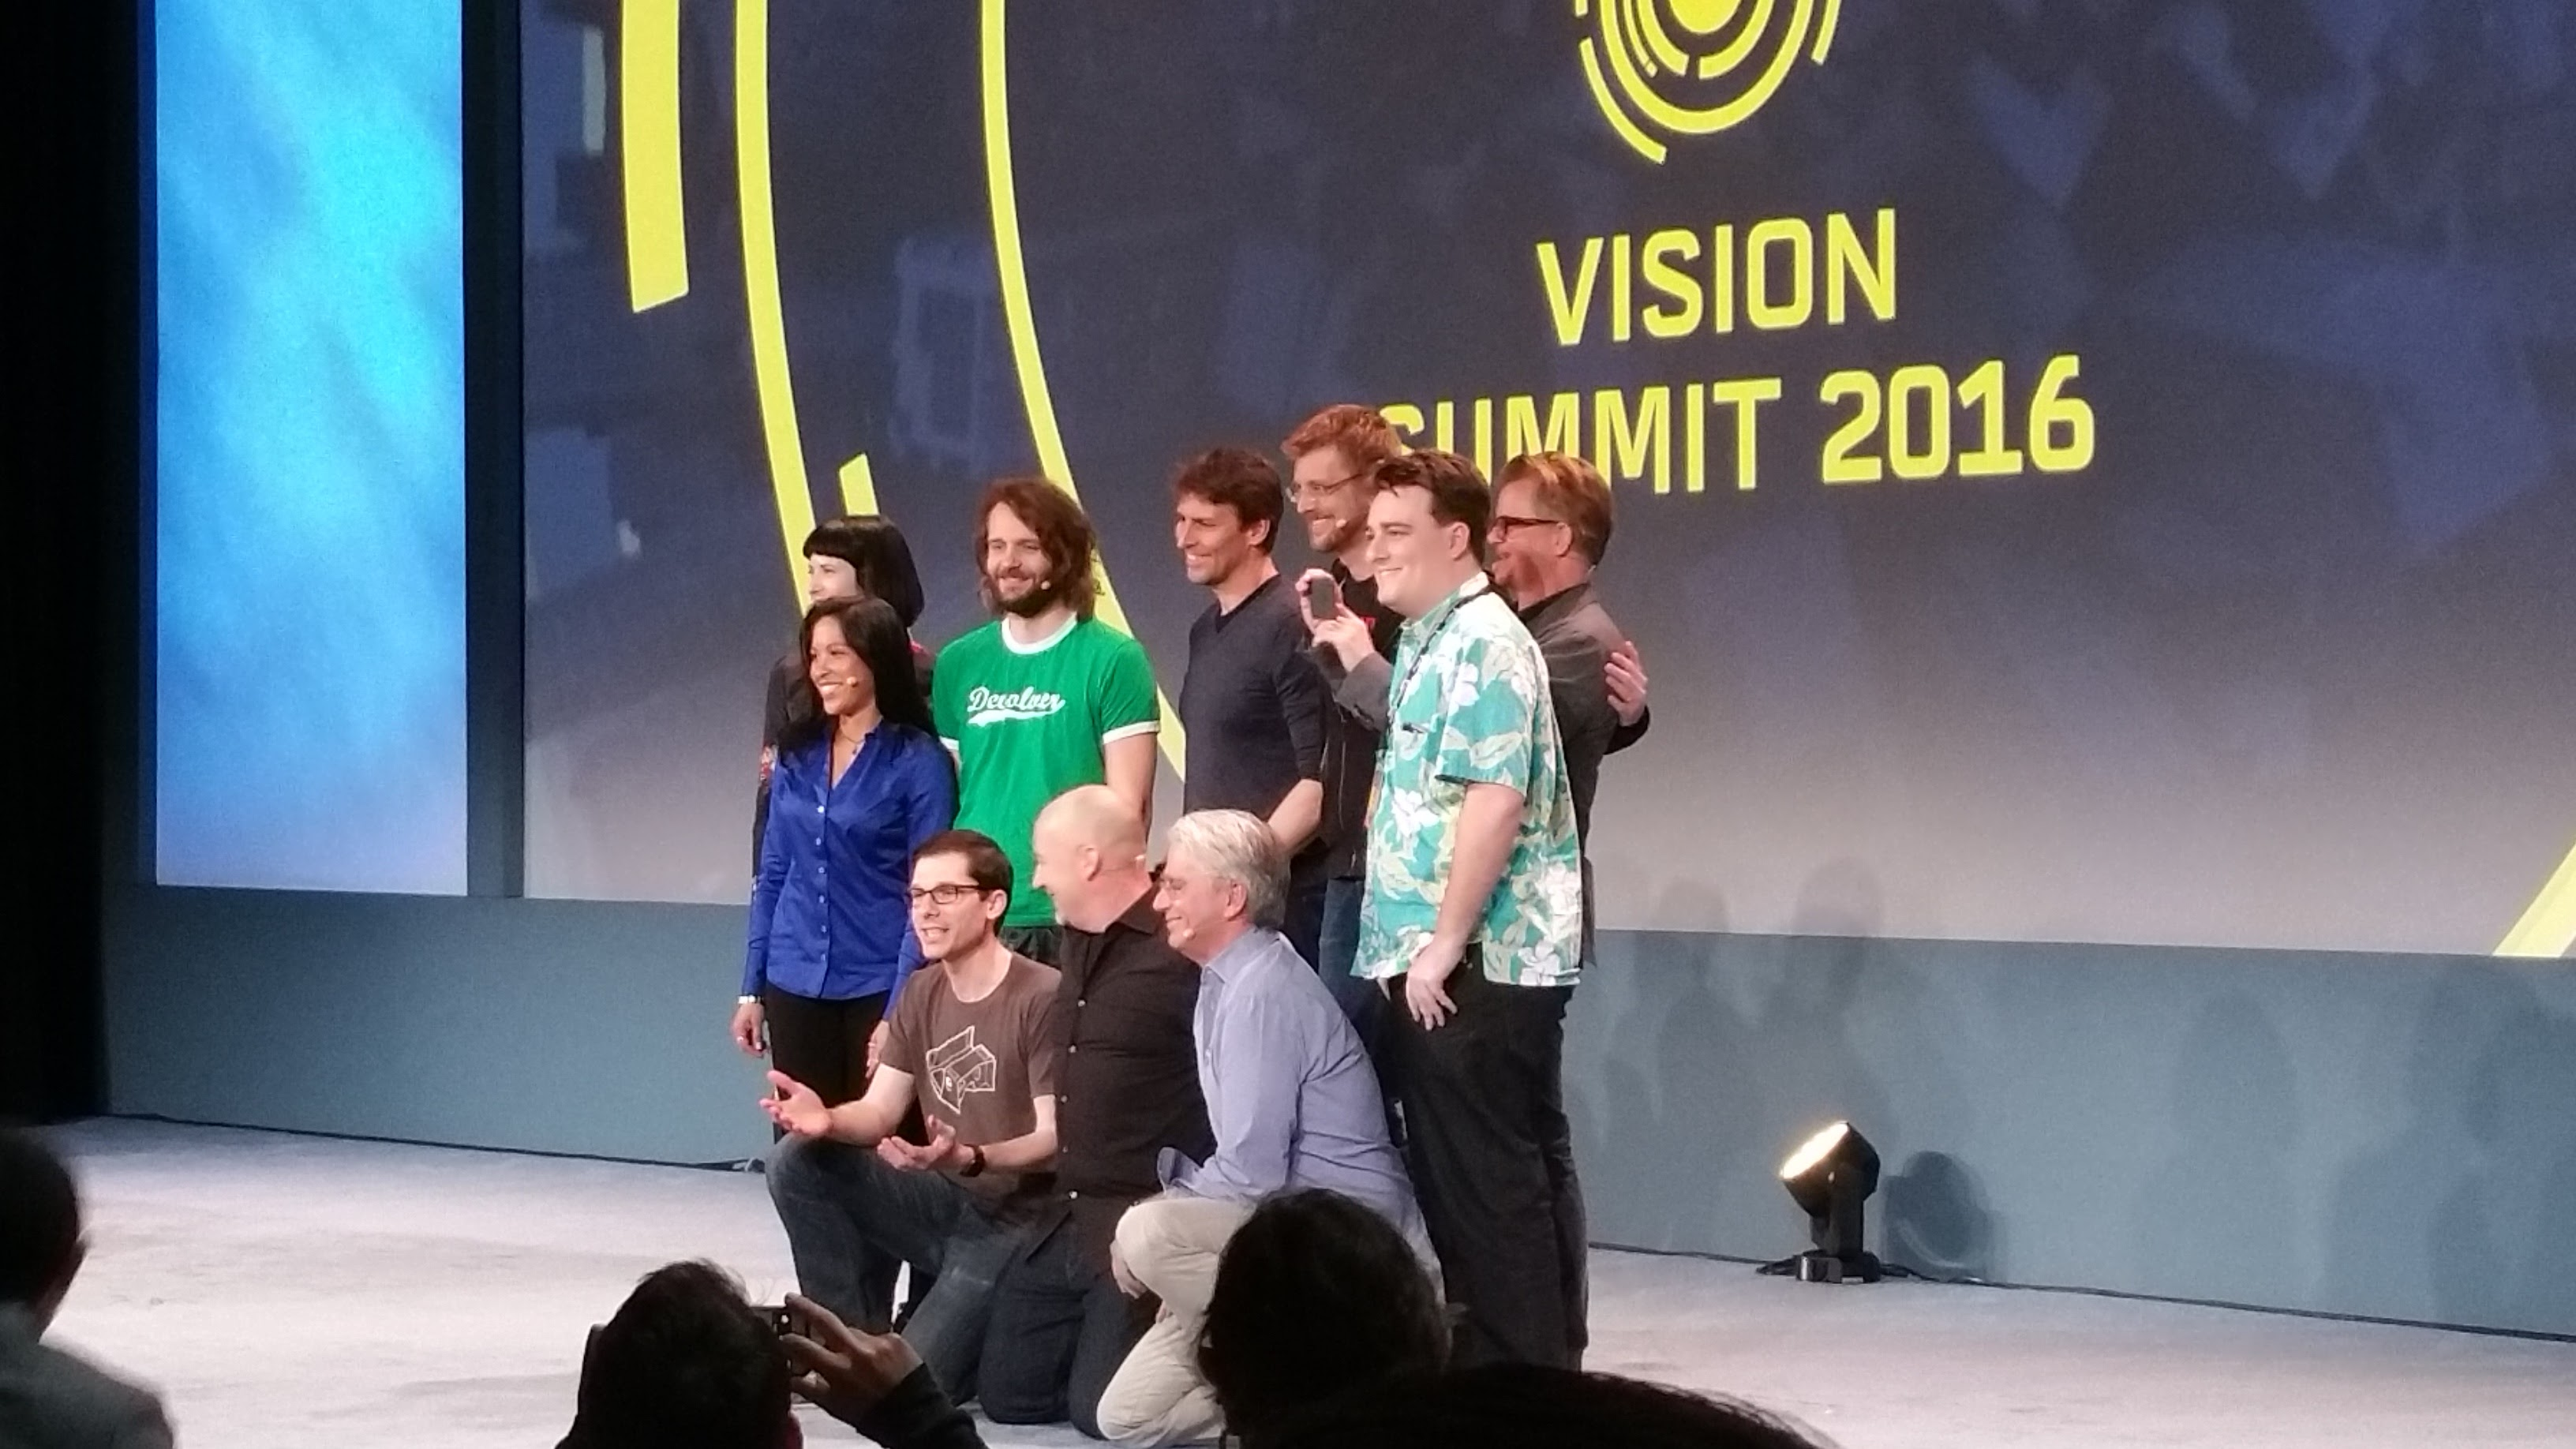 Vision Summit 2016, Hollywood, CA